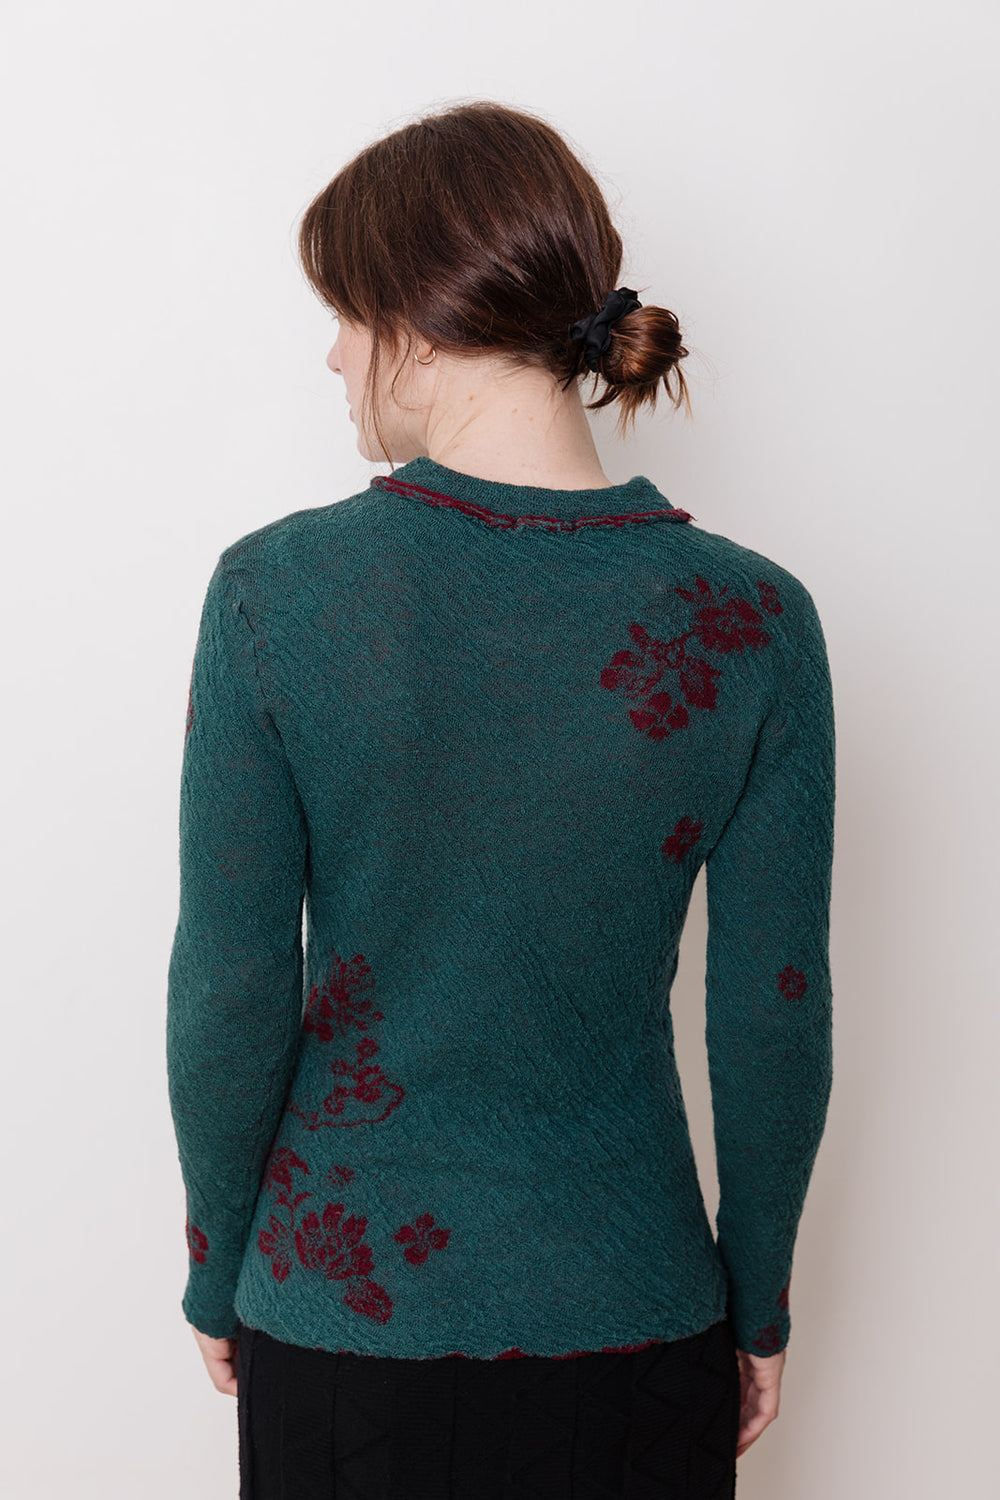 Knit Sweater with Collar, Blue Floral